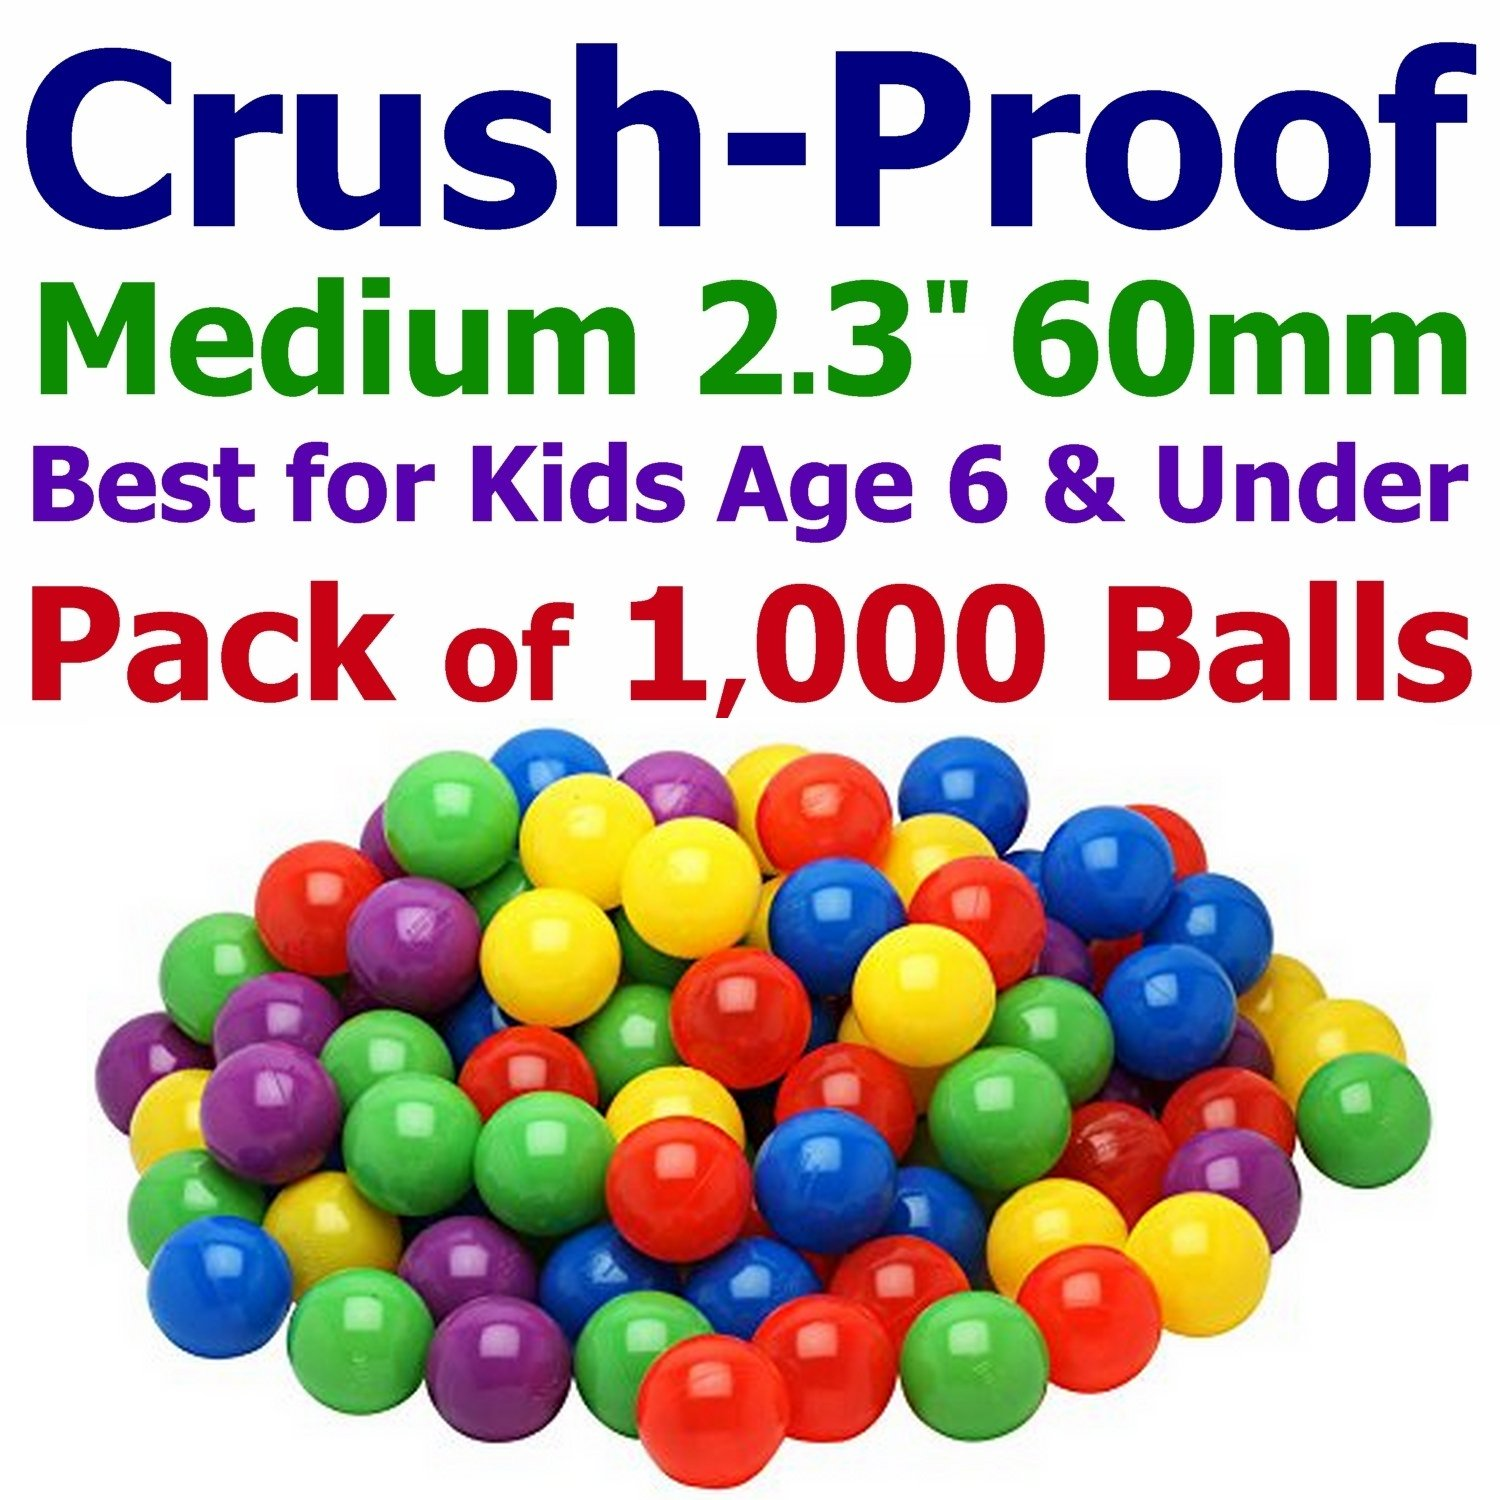 My Balls 400 Medium Size Ball Pit Balls - 5 Bright Colors; 2.3' 60mm, Crush-Proof Air-Filled; Phthalate Free; BPA Free; Non-Toxic; Non-PVC; Non-Recycled Plastic Same Size as Click N' Play Balls CMS